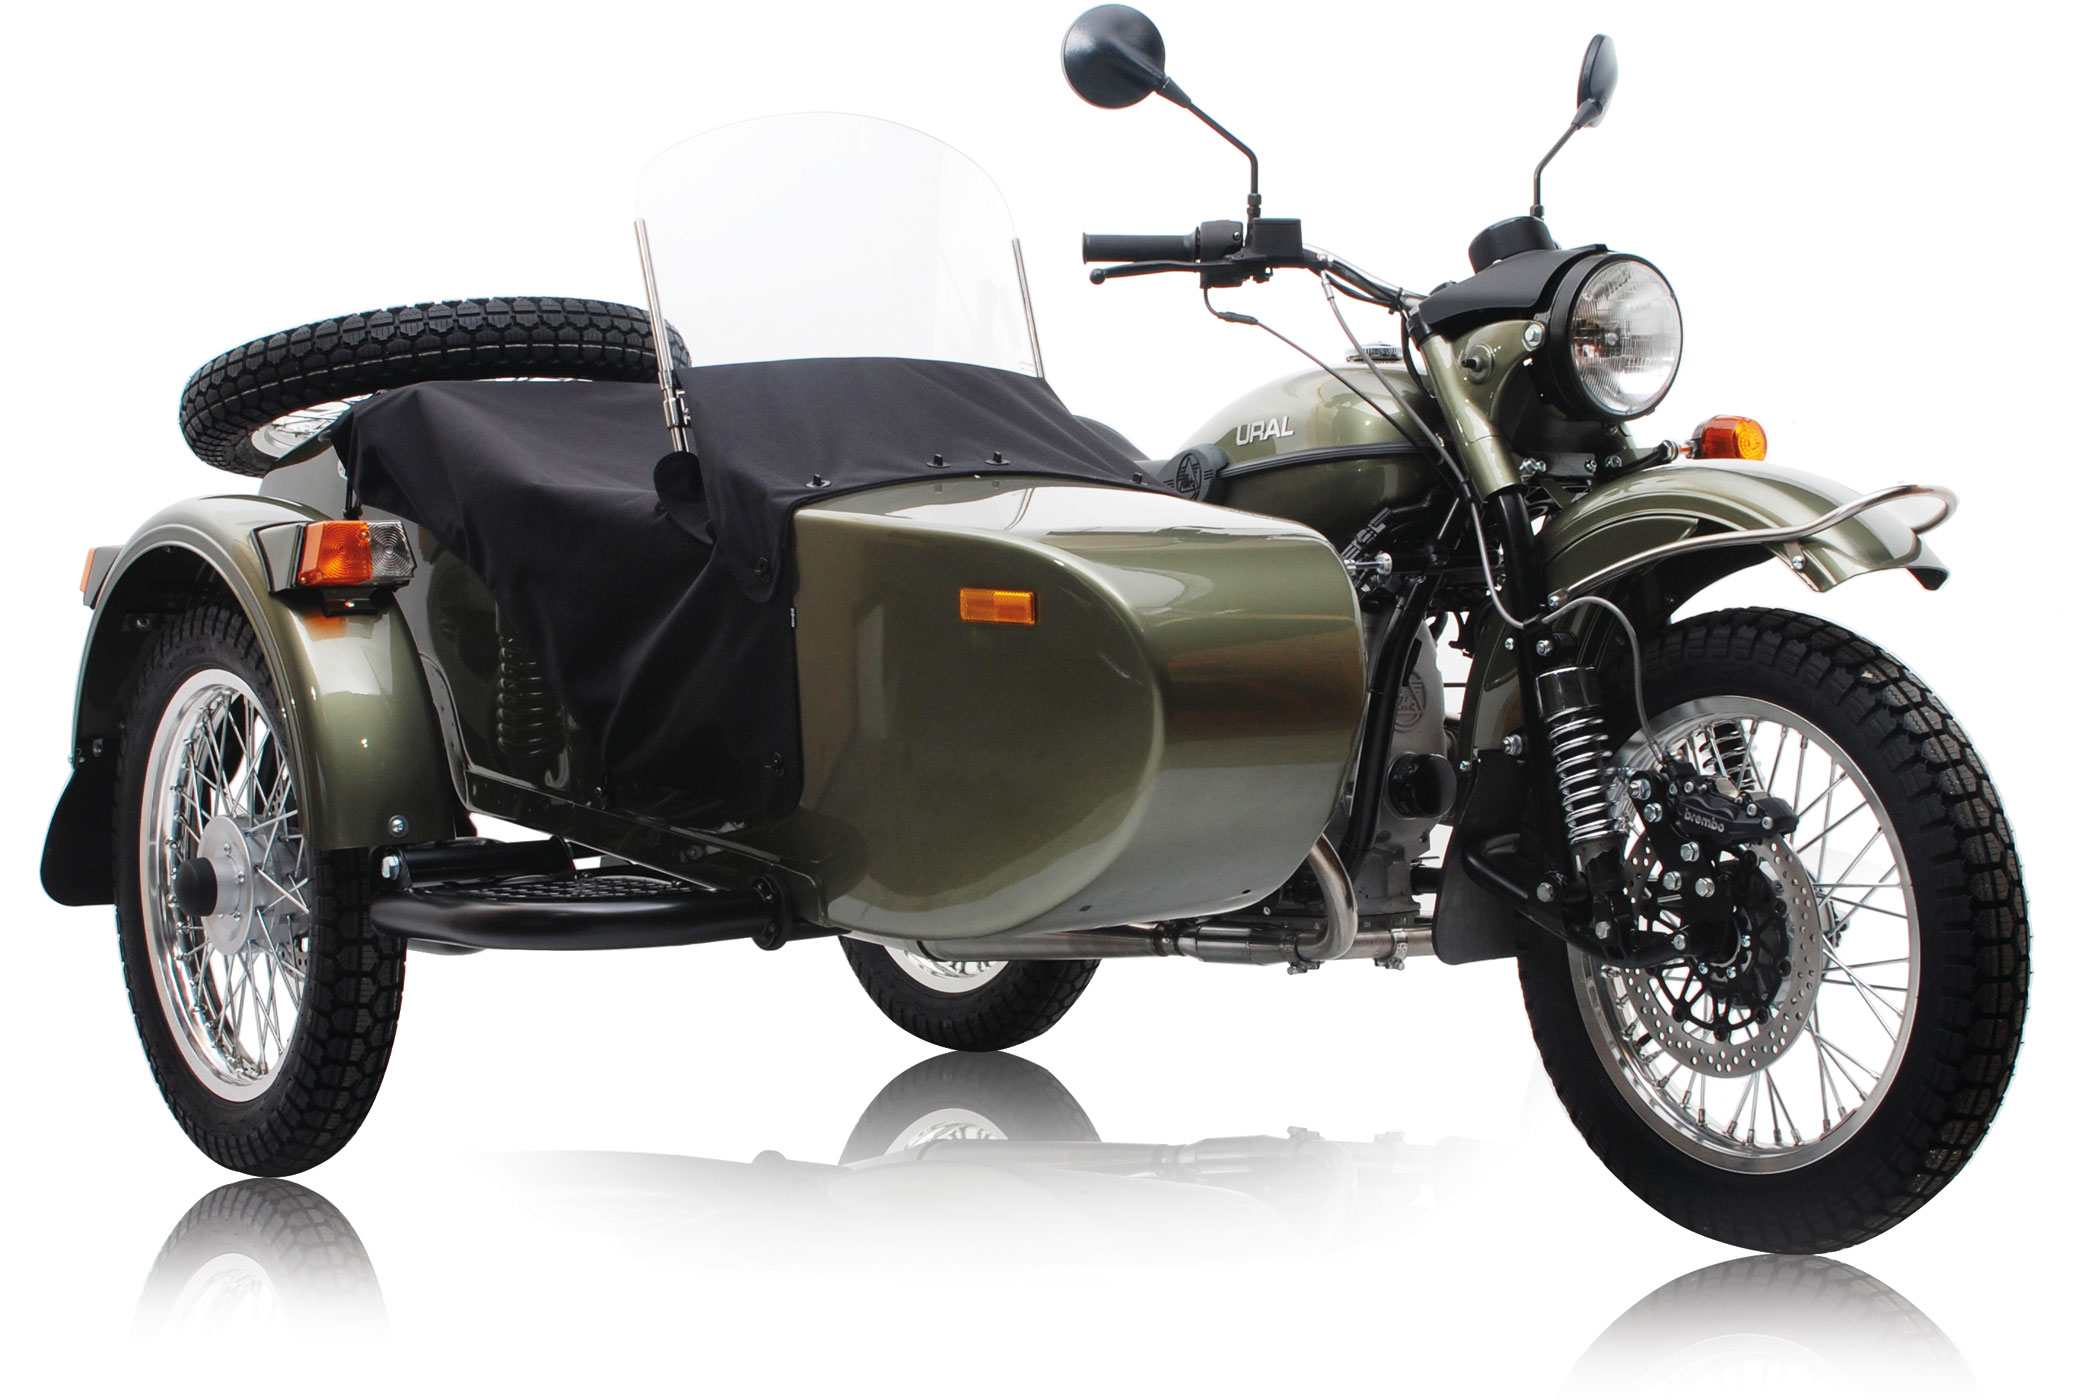 Reed Tax Calculator >> Ural sidecars coming to Malaysia - from RM80,000